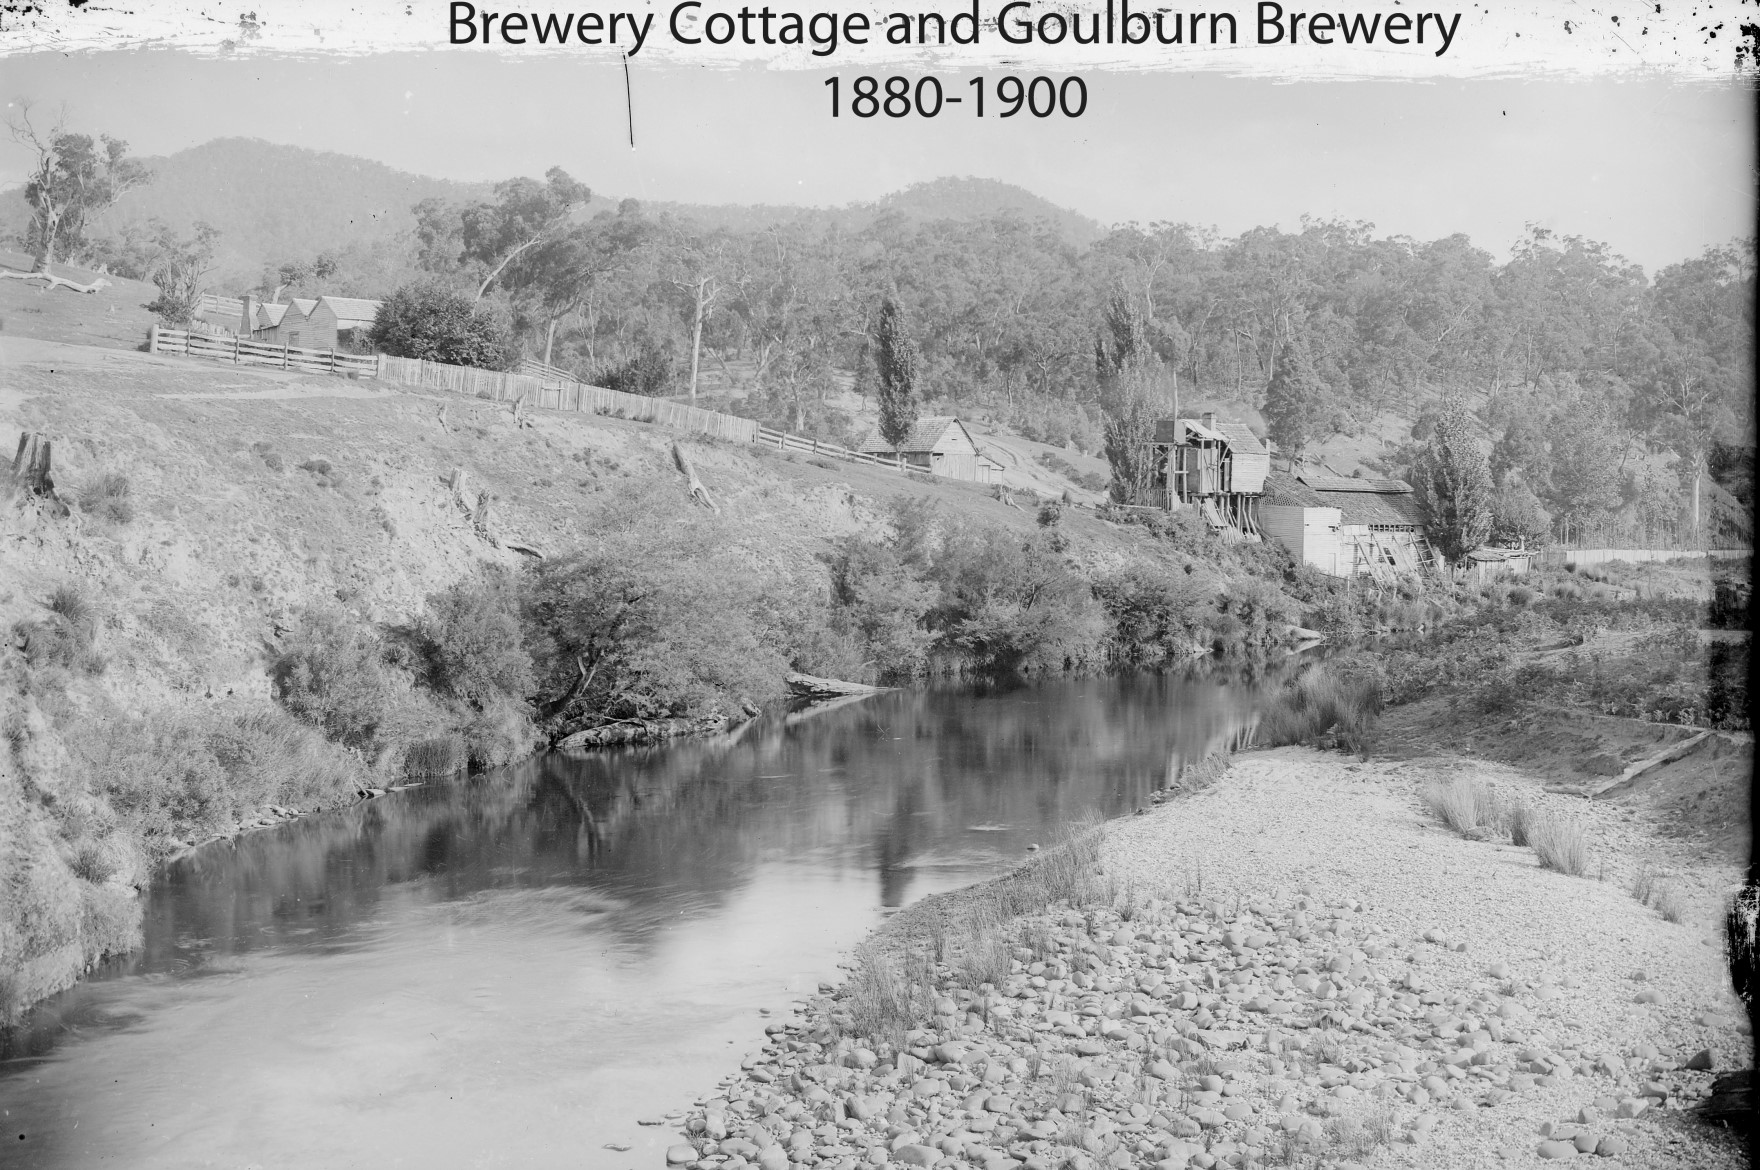 Goulburn Brewery from Licola Bridge 1880-1900